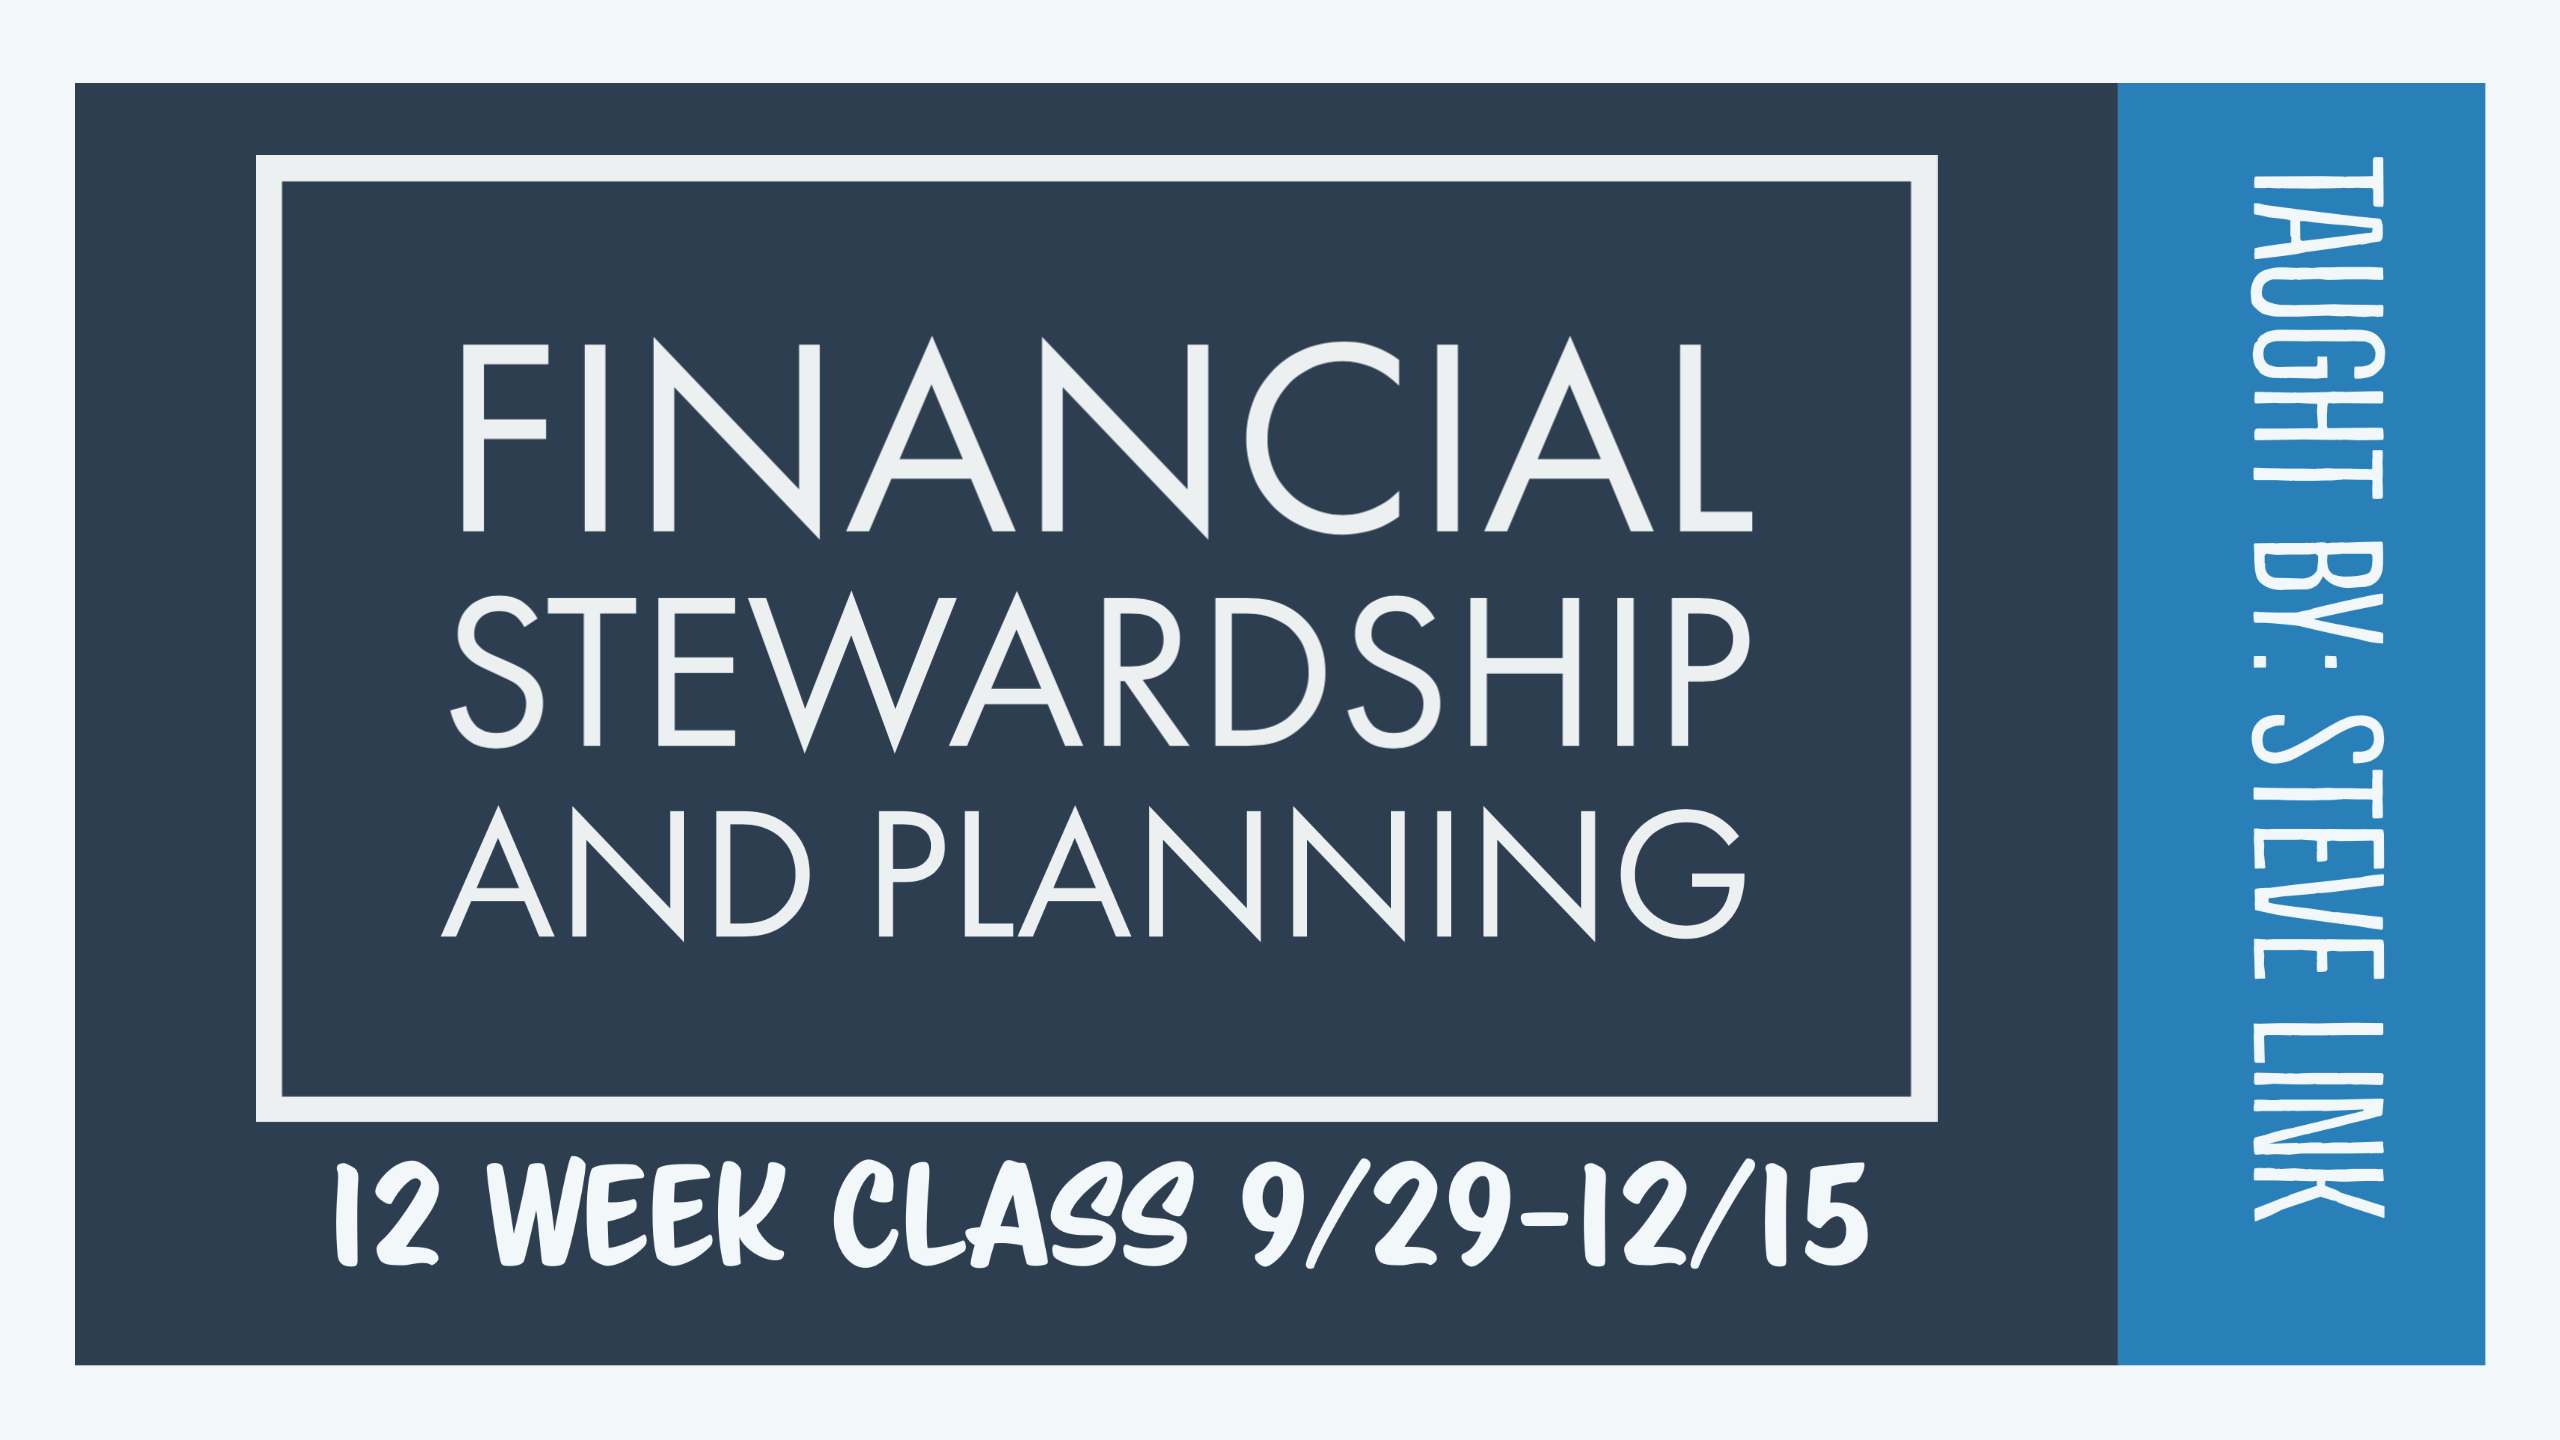 Financial Stewardship image